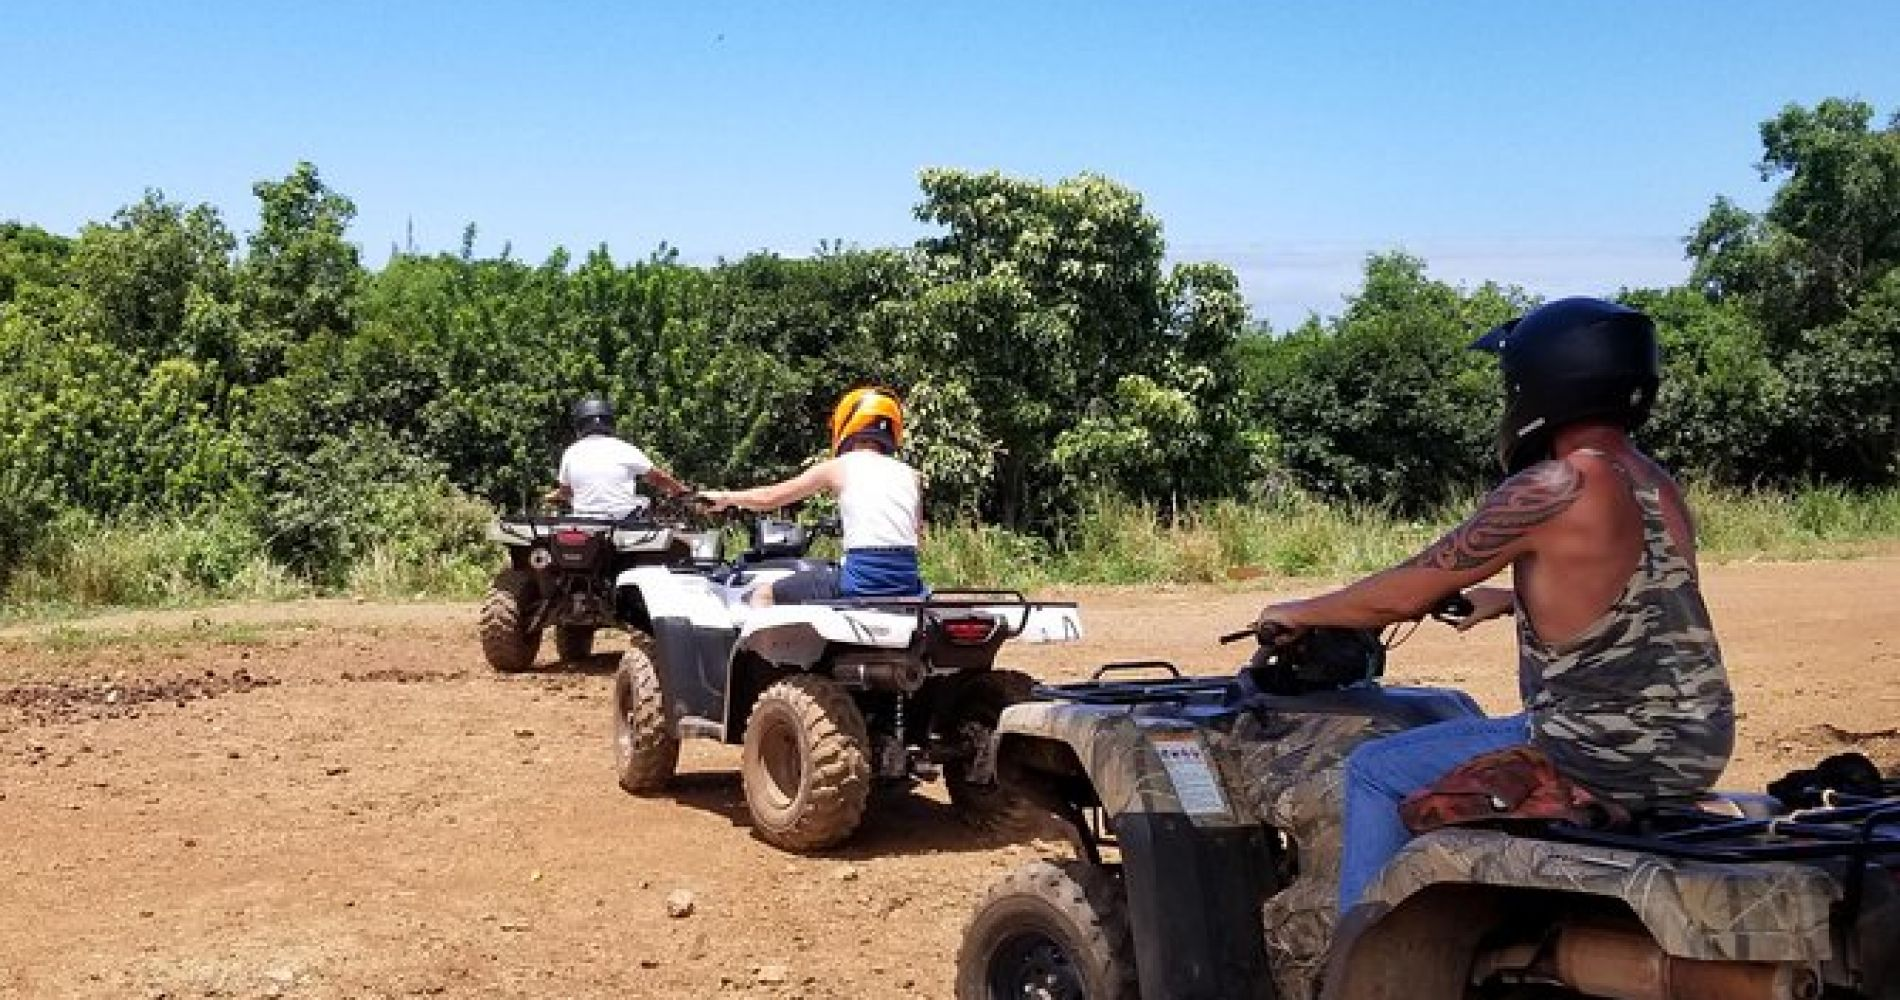 ATV Adventure in West Maui Mountains